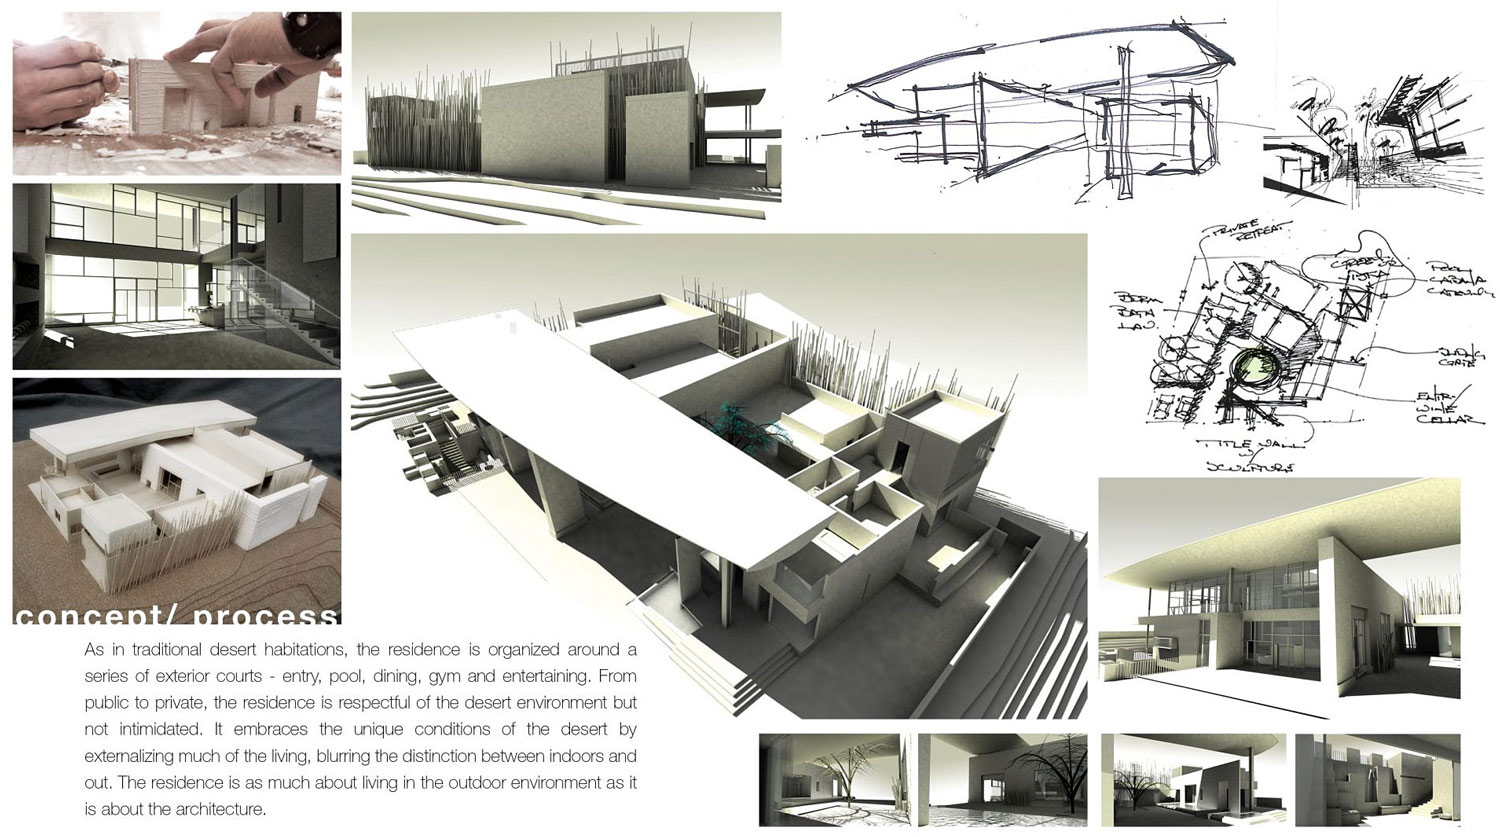 Concept / Process Diagram, Massive Modern Home in Las Vegas